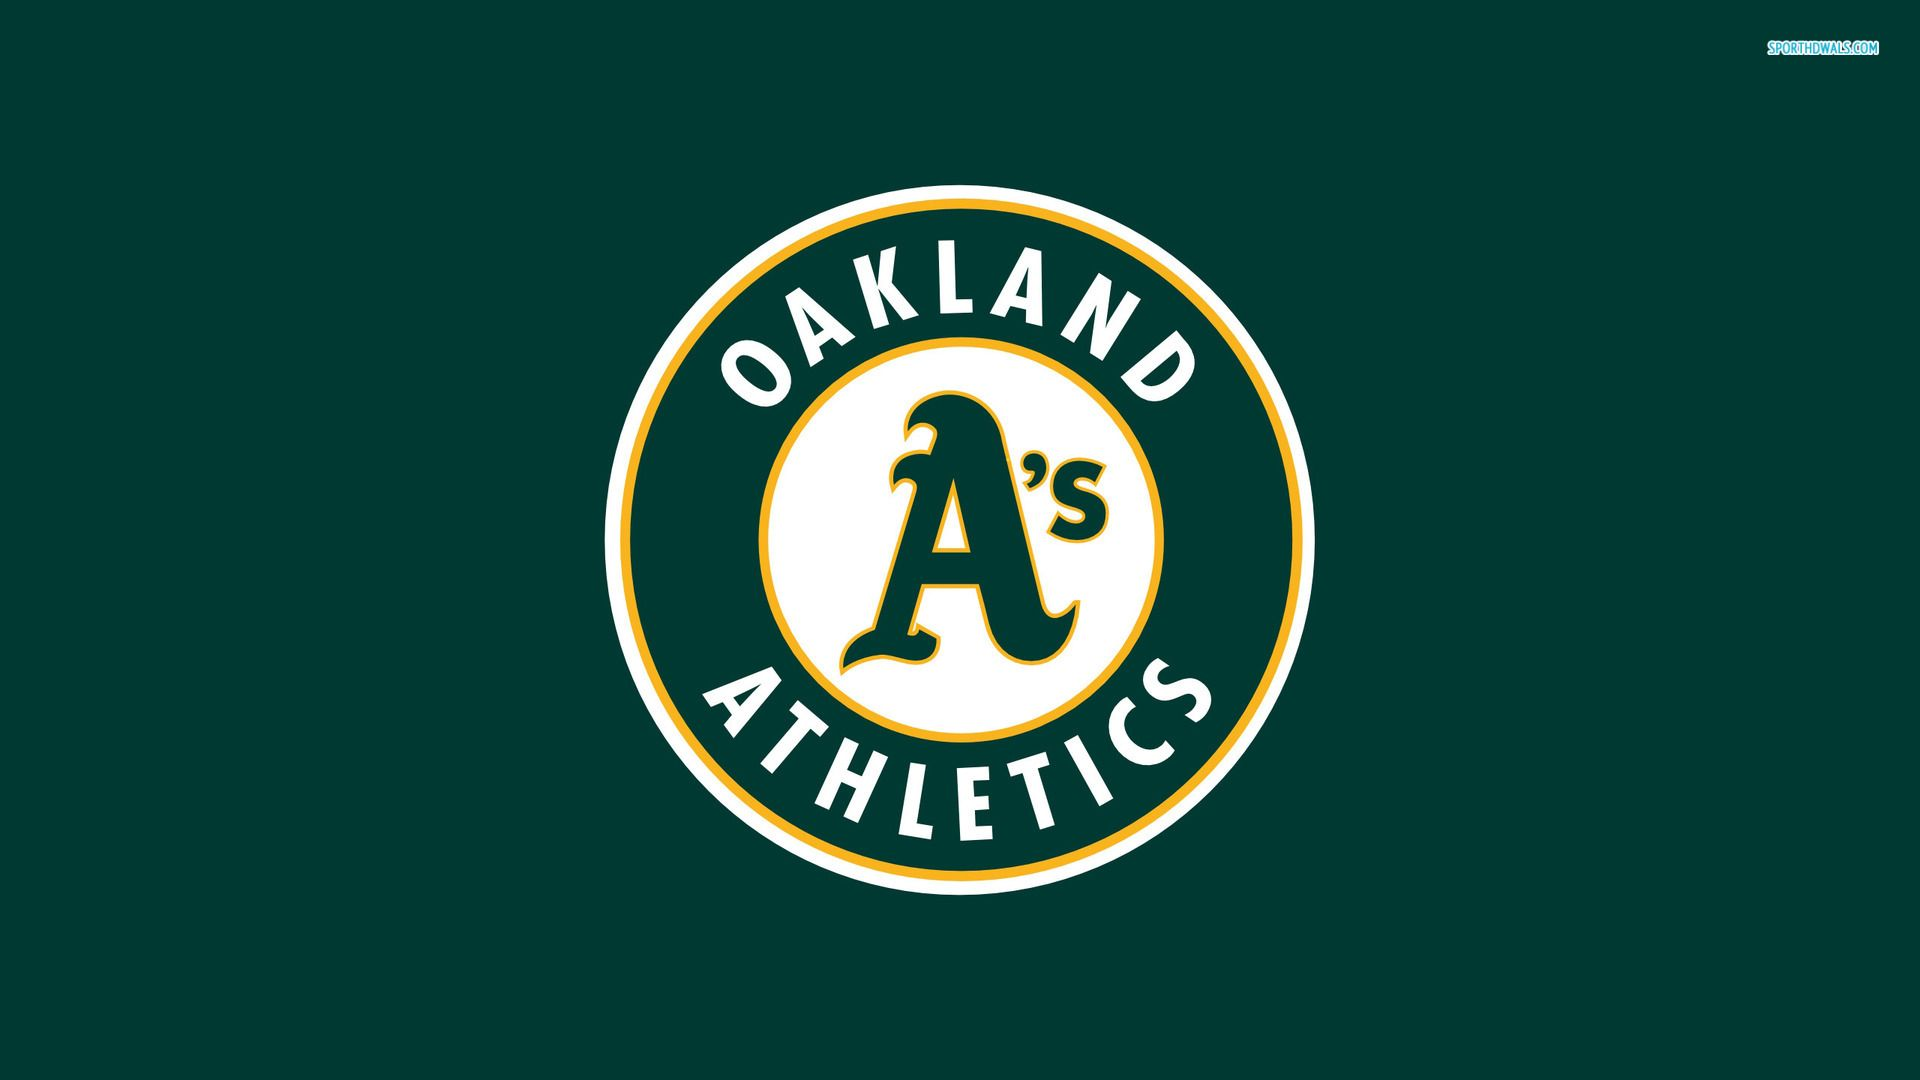 1920x1080 - Oakland Athletics Wallpapers 15